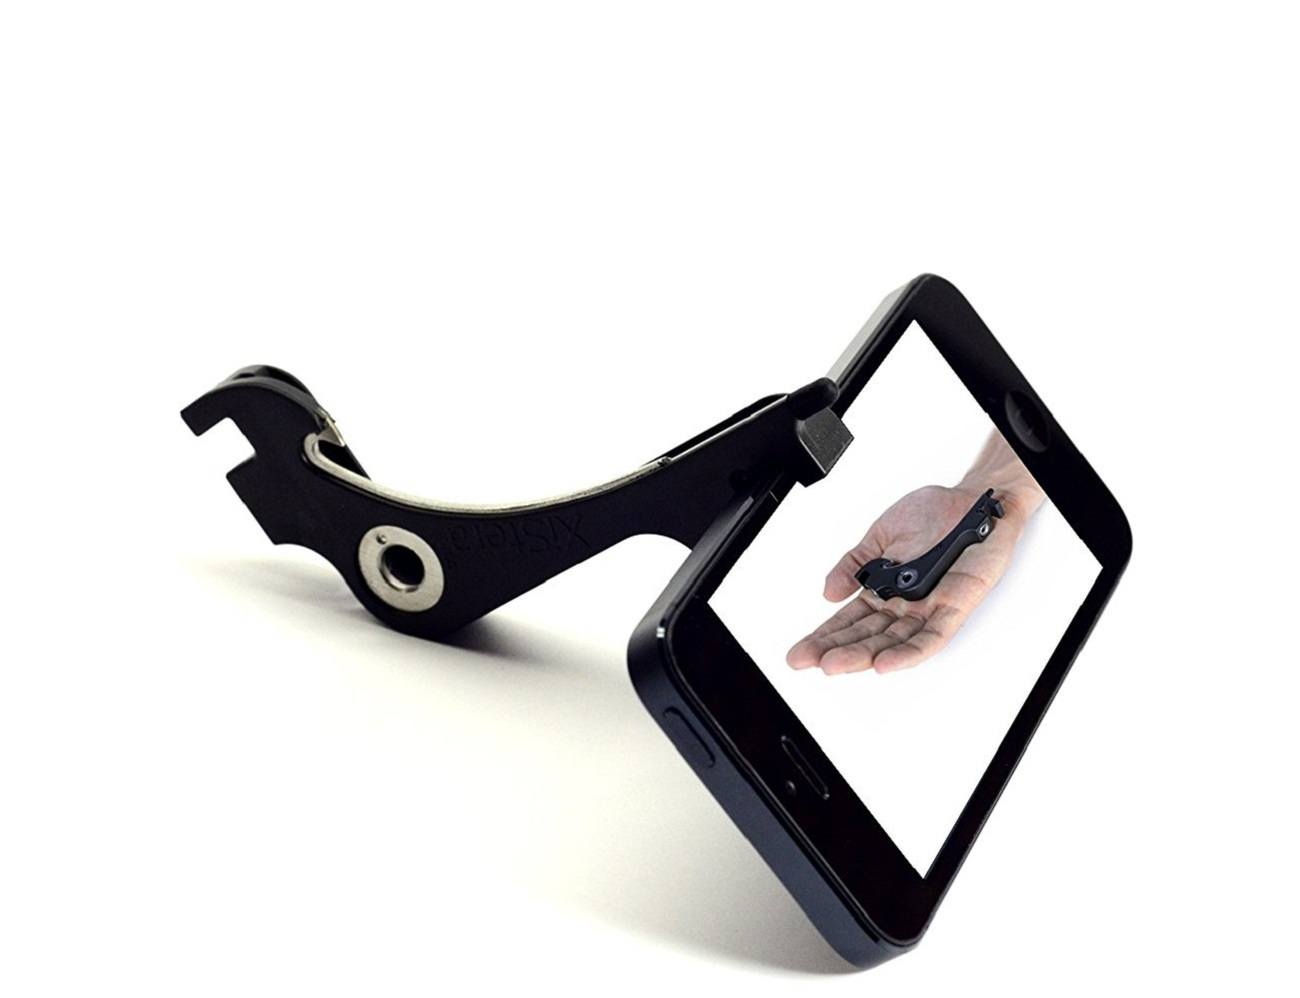 XiStera 8-in-1 Multitool for iPhone 5/5s